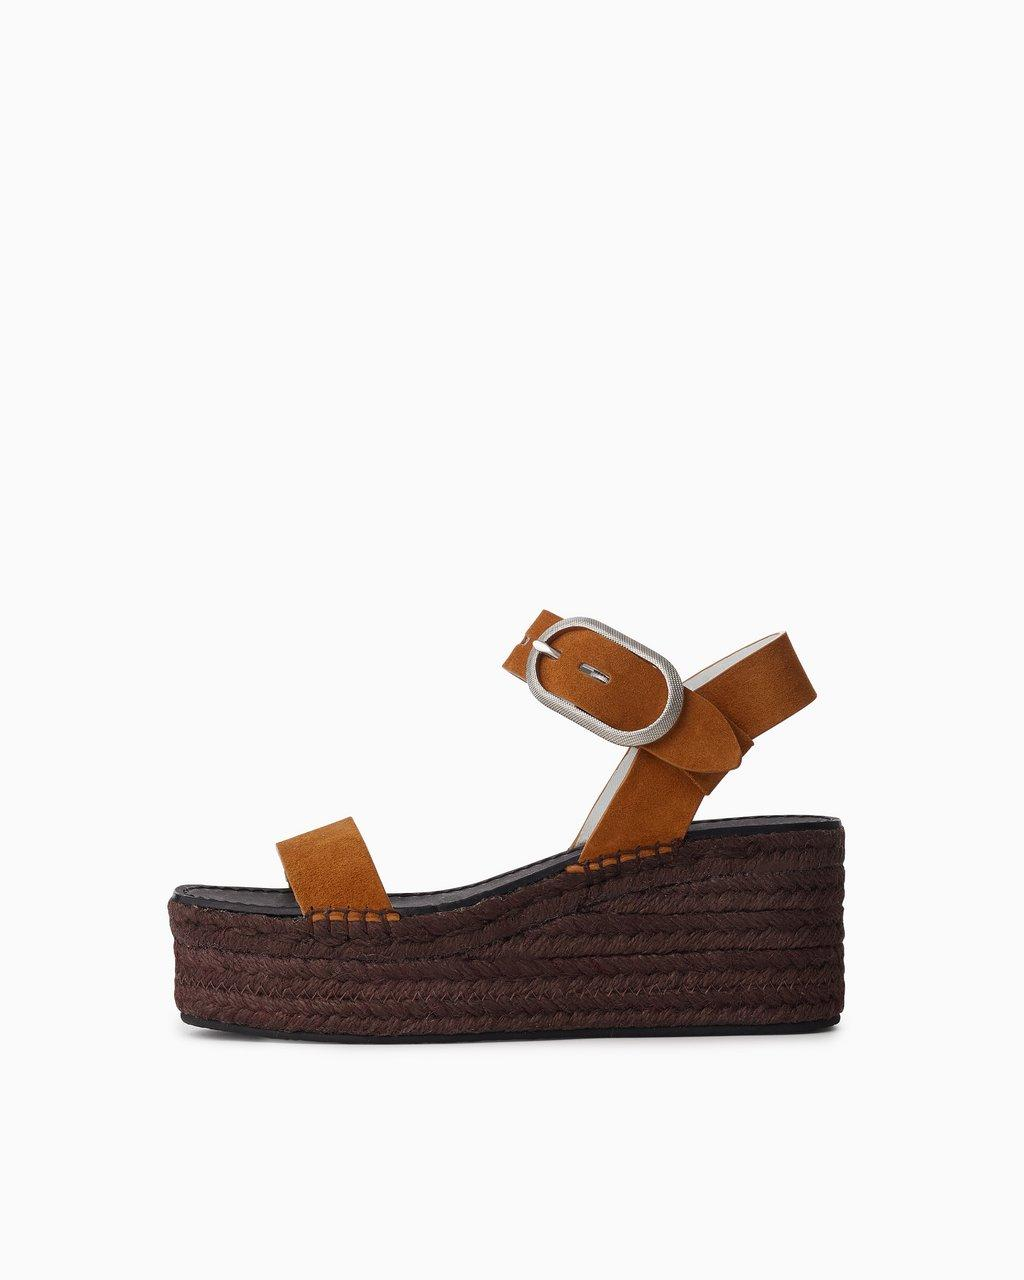 Ansley Buckle Espadrille - Suede